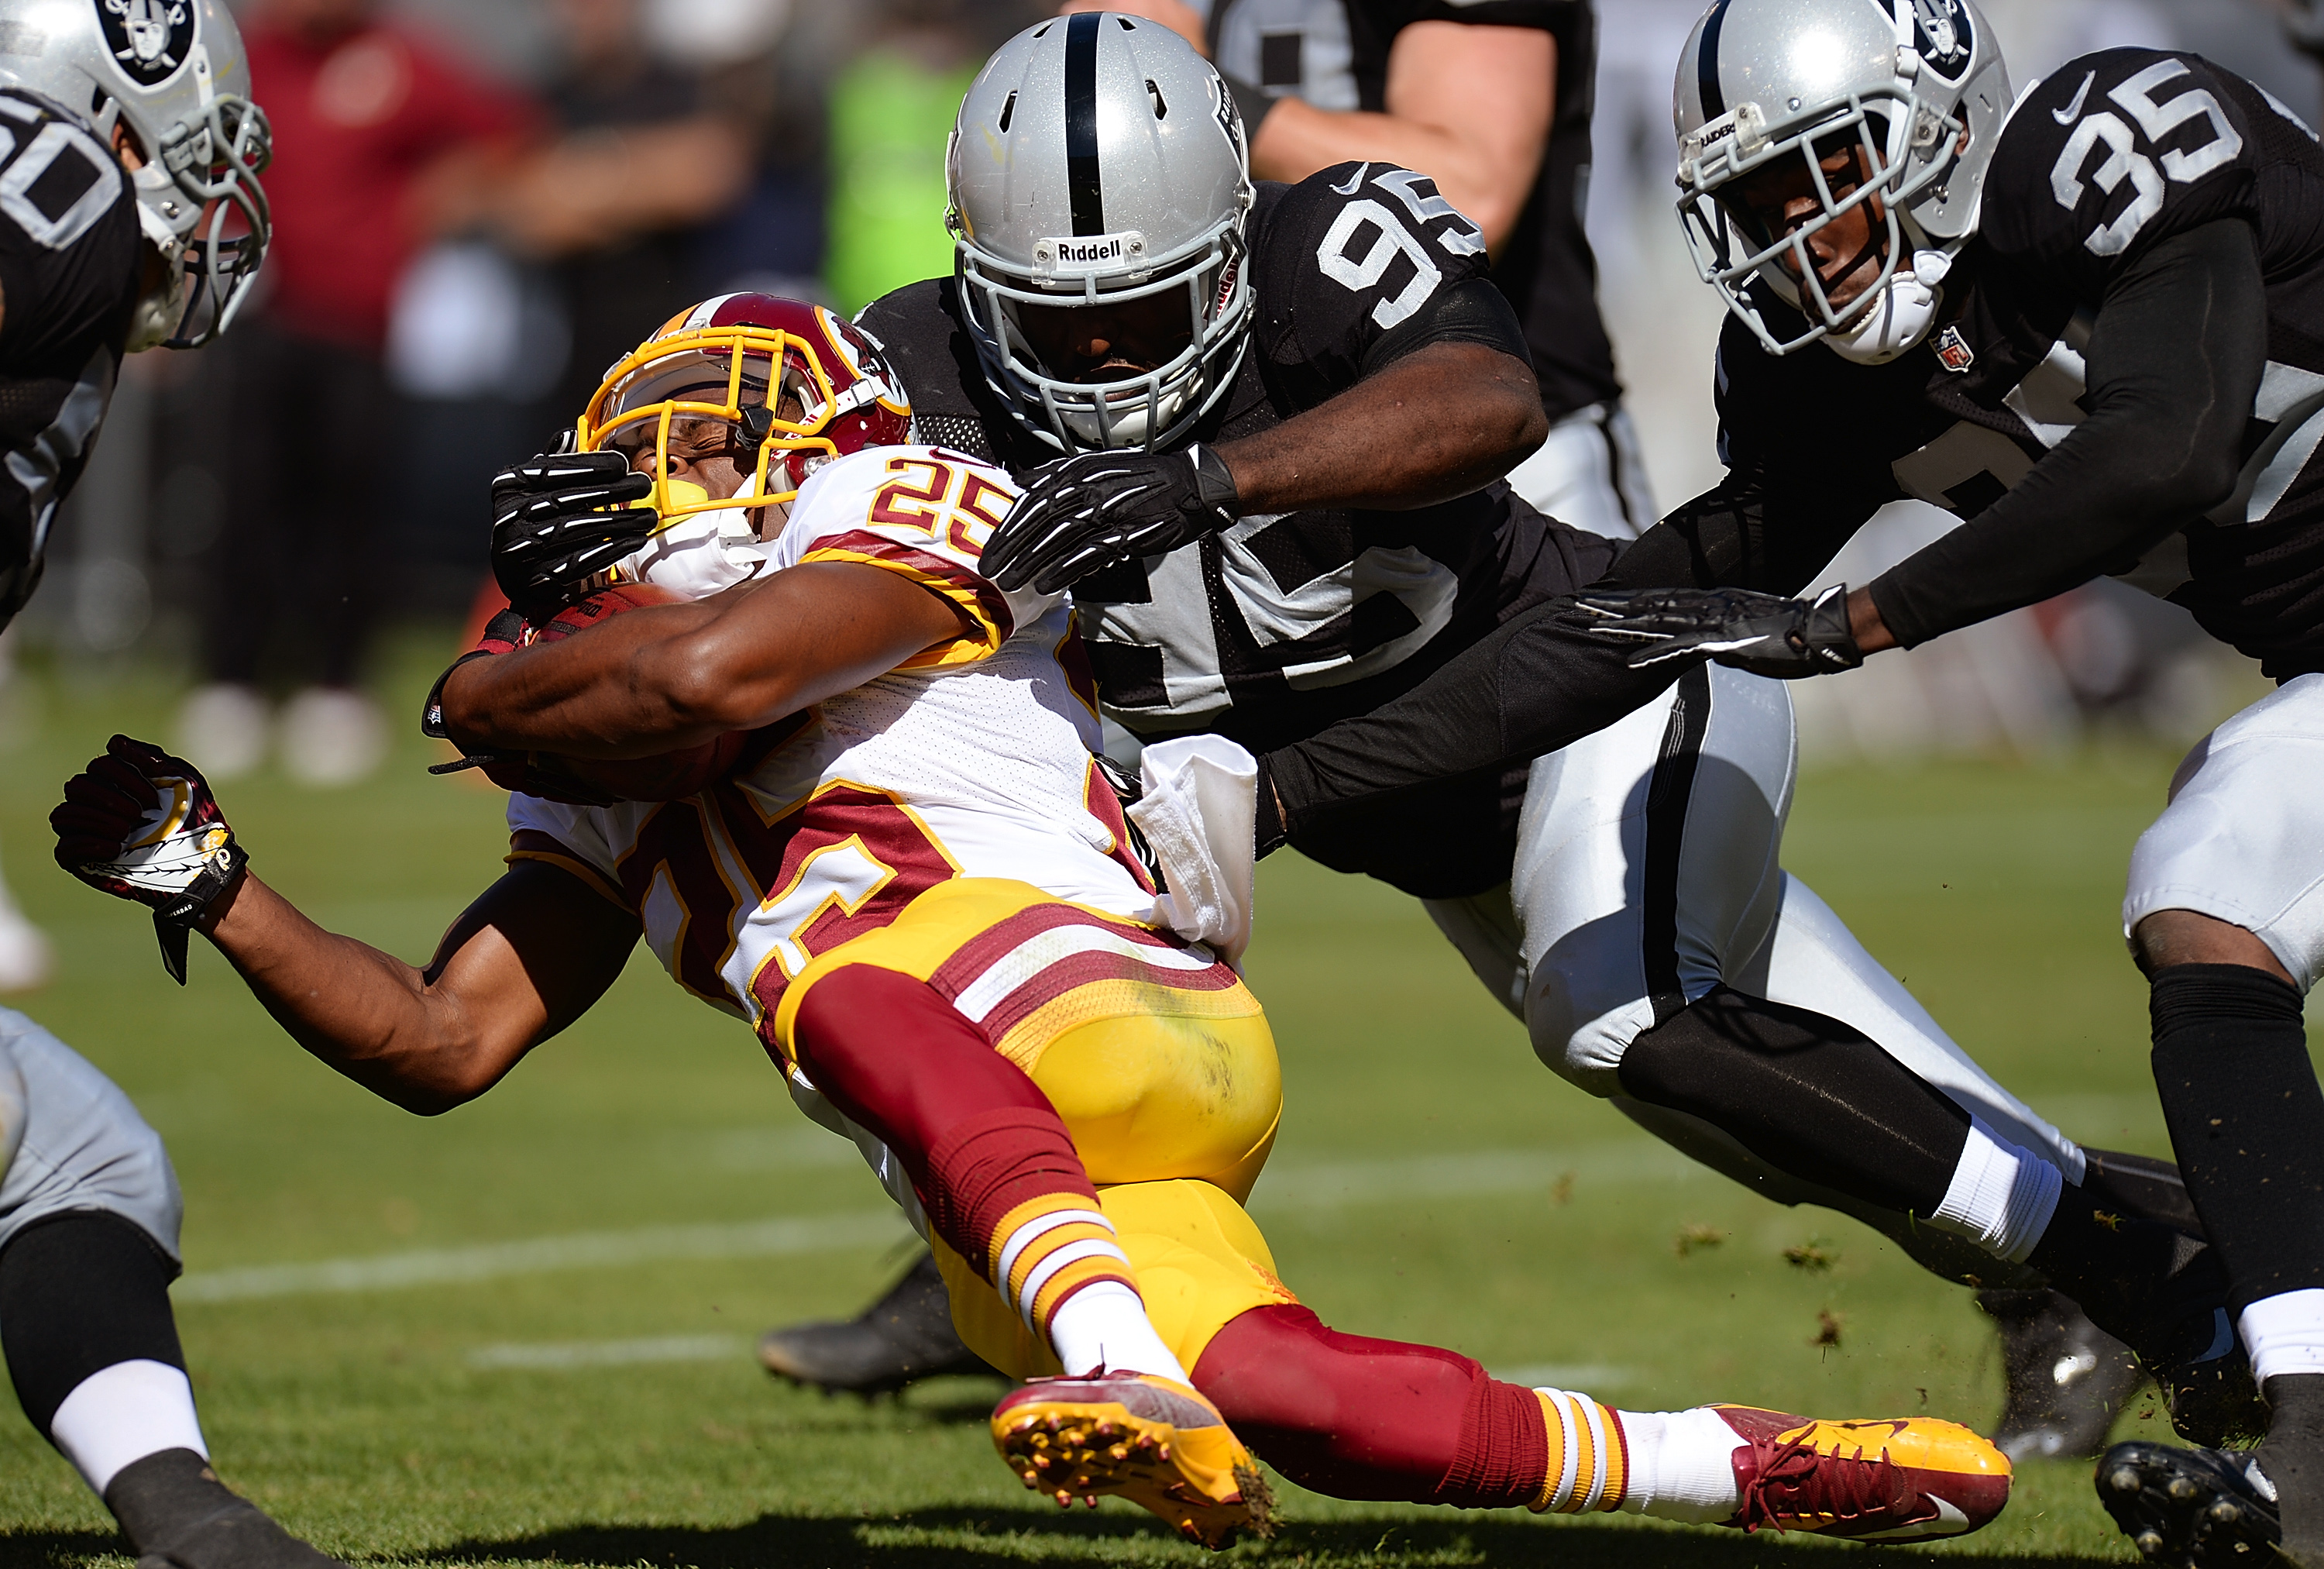 Raiders Trail Redskins Early on 'Sunday Night Football'